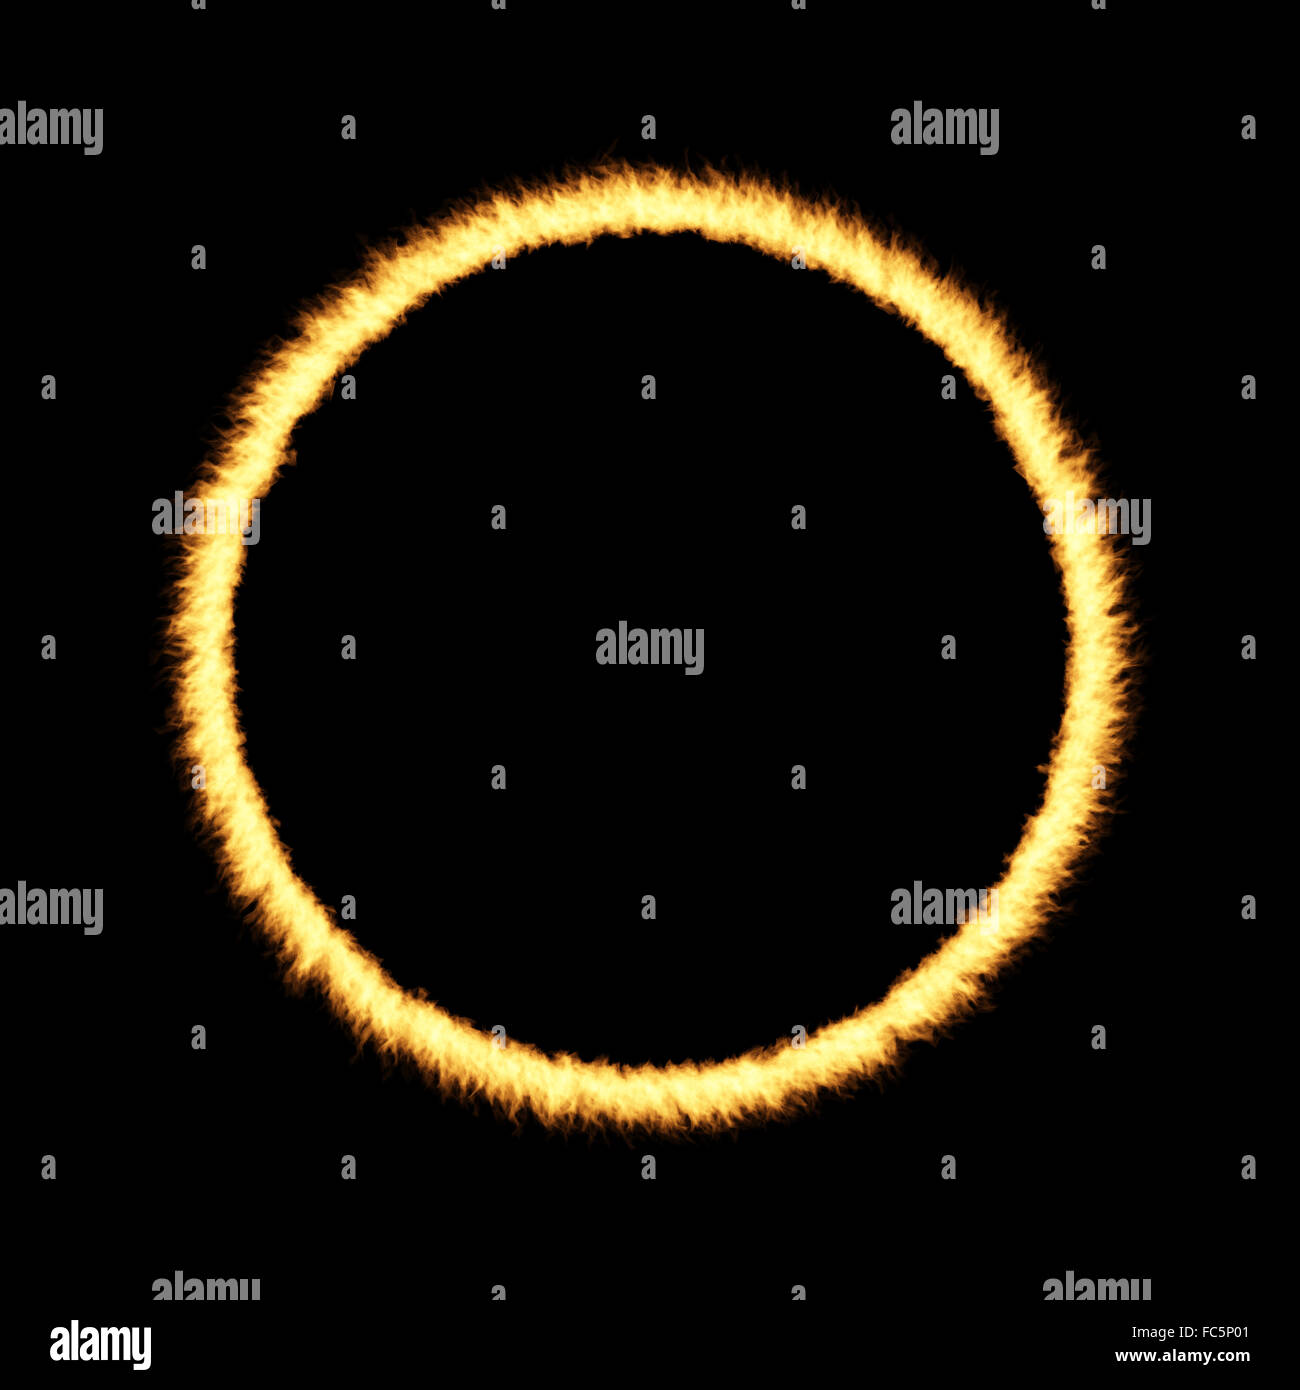 Ring of Fire - Stock Image